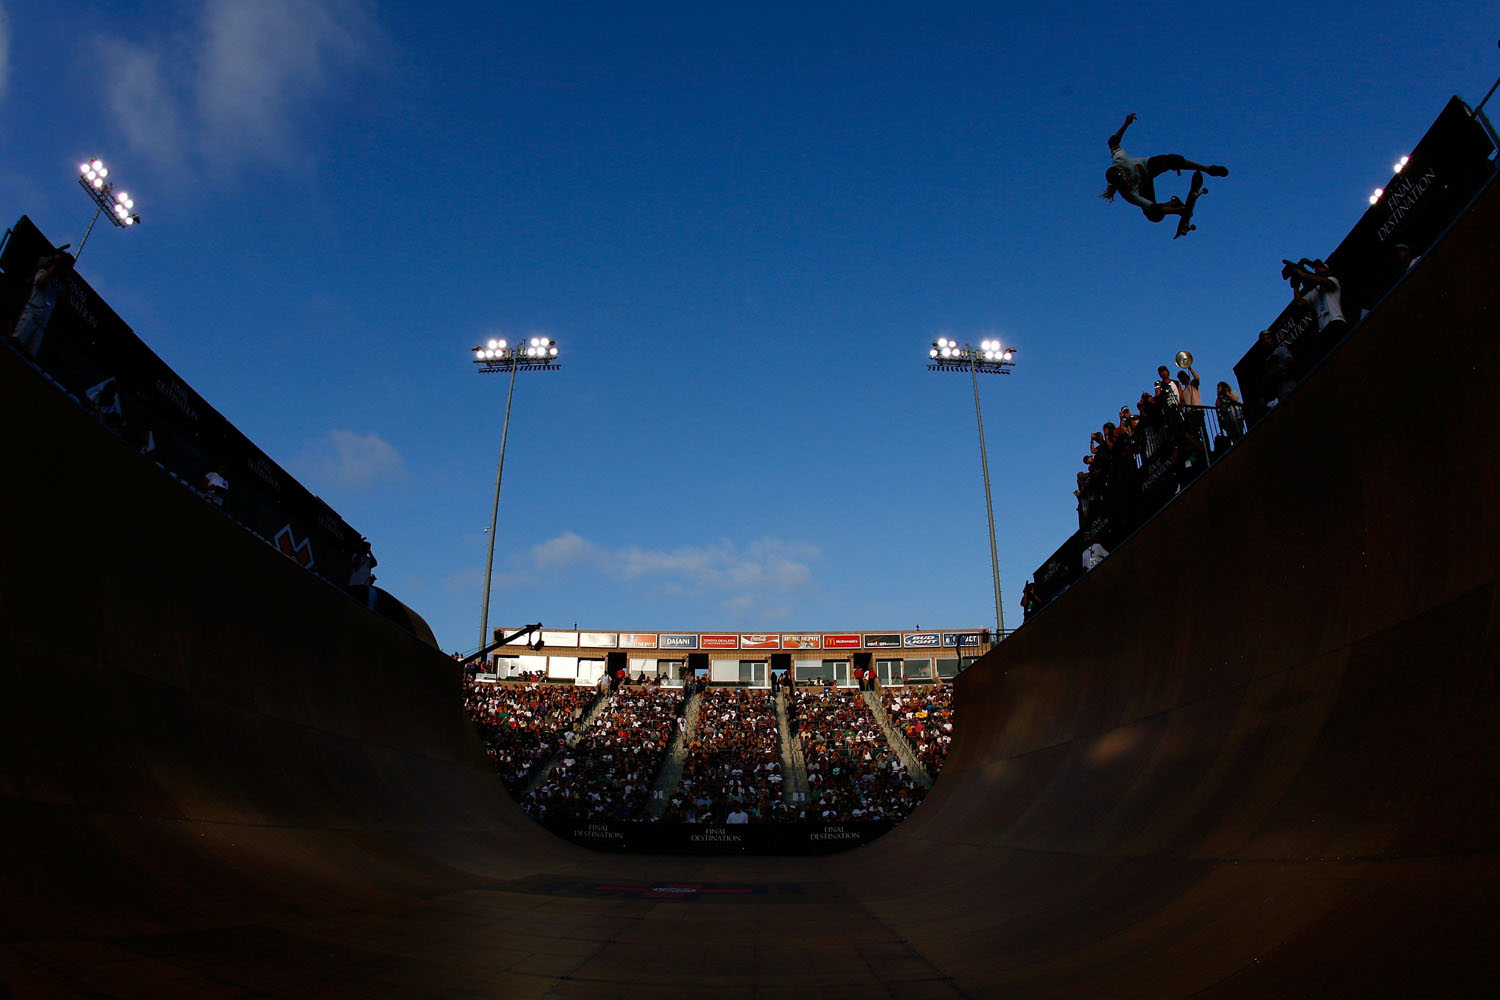 Rob Lorifice competes in the Men's Skateboard Vert event during X Games 15 at the Home Depot Center on August 1, 2009 in Carson, California.